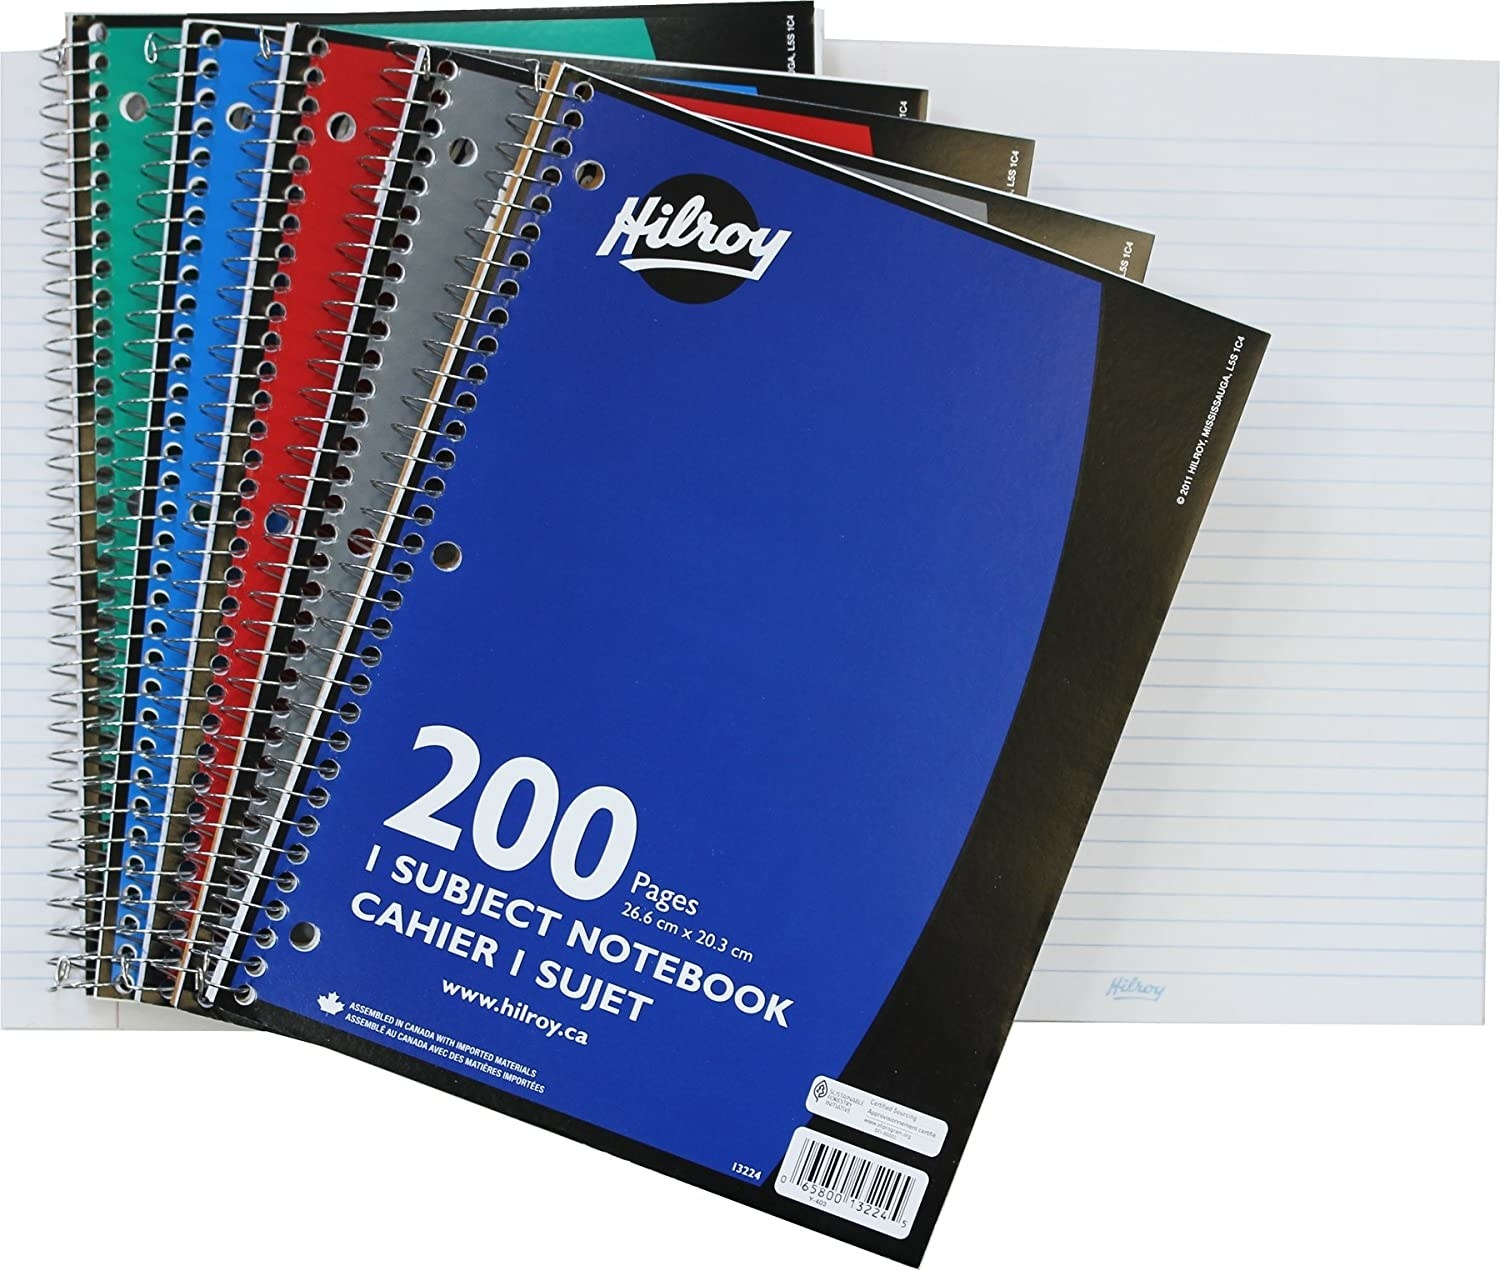 Notebooks stacked on top of each other with a wire binding